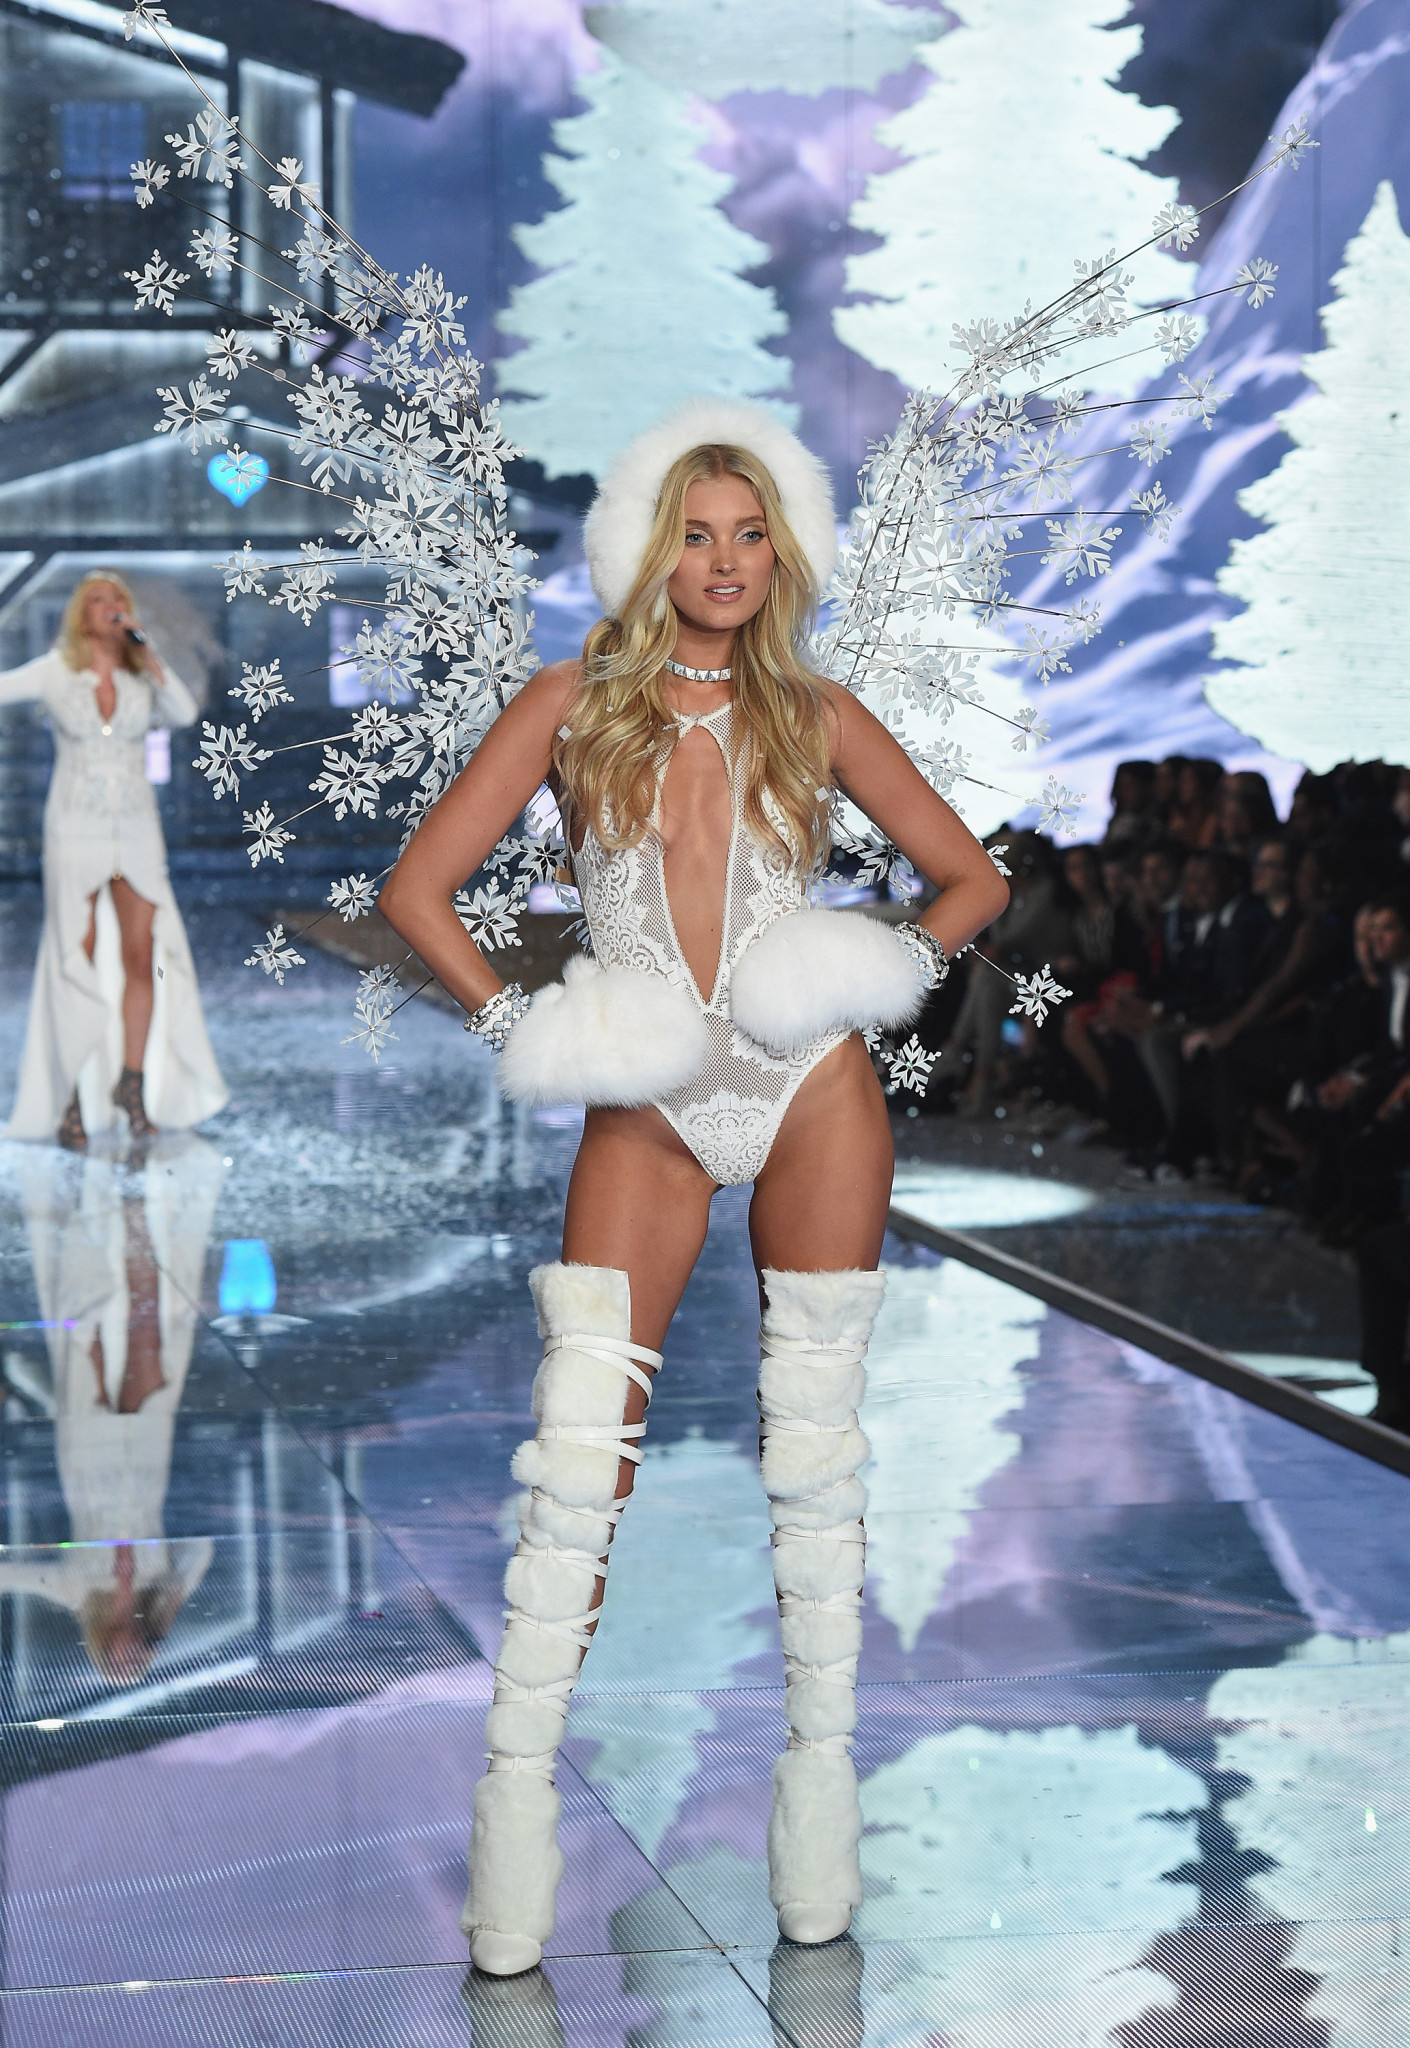 NEW YORK, NY - NOVEMBER 10: Model and New Victoria's Secret Angel Elsa Hosk from Sweden walks the runway during the 2015 Victoria's Secret Fashion Show at Lexington Avenue Armory on November 10, 2015 in New York City. (Photo by Dimitrios Kambouris/Getty Images for Victoria's Secret) *** Local Caption *** Elsa Hosk